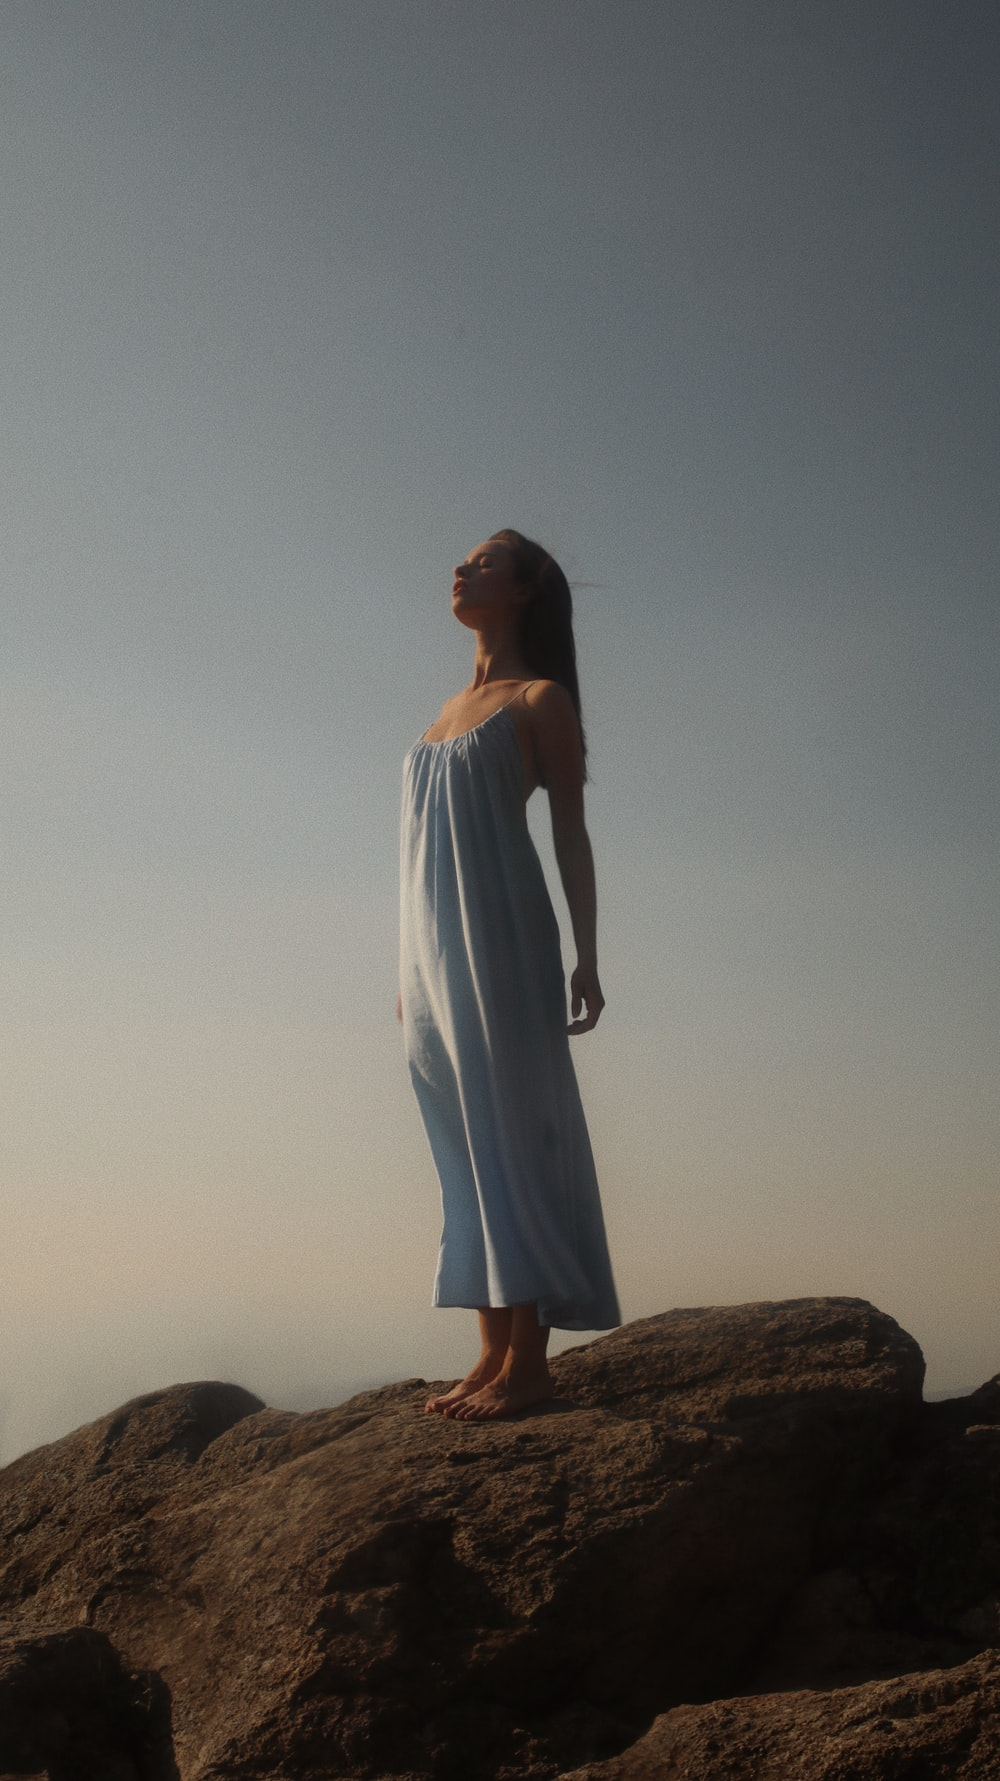 woman in white dress standing on brown rock during daytime